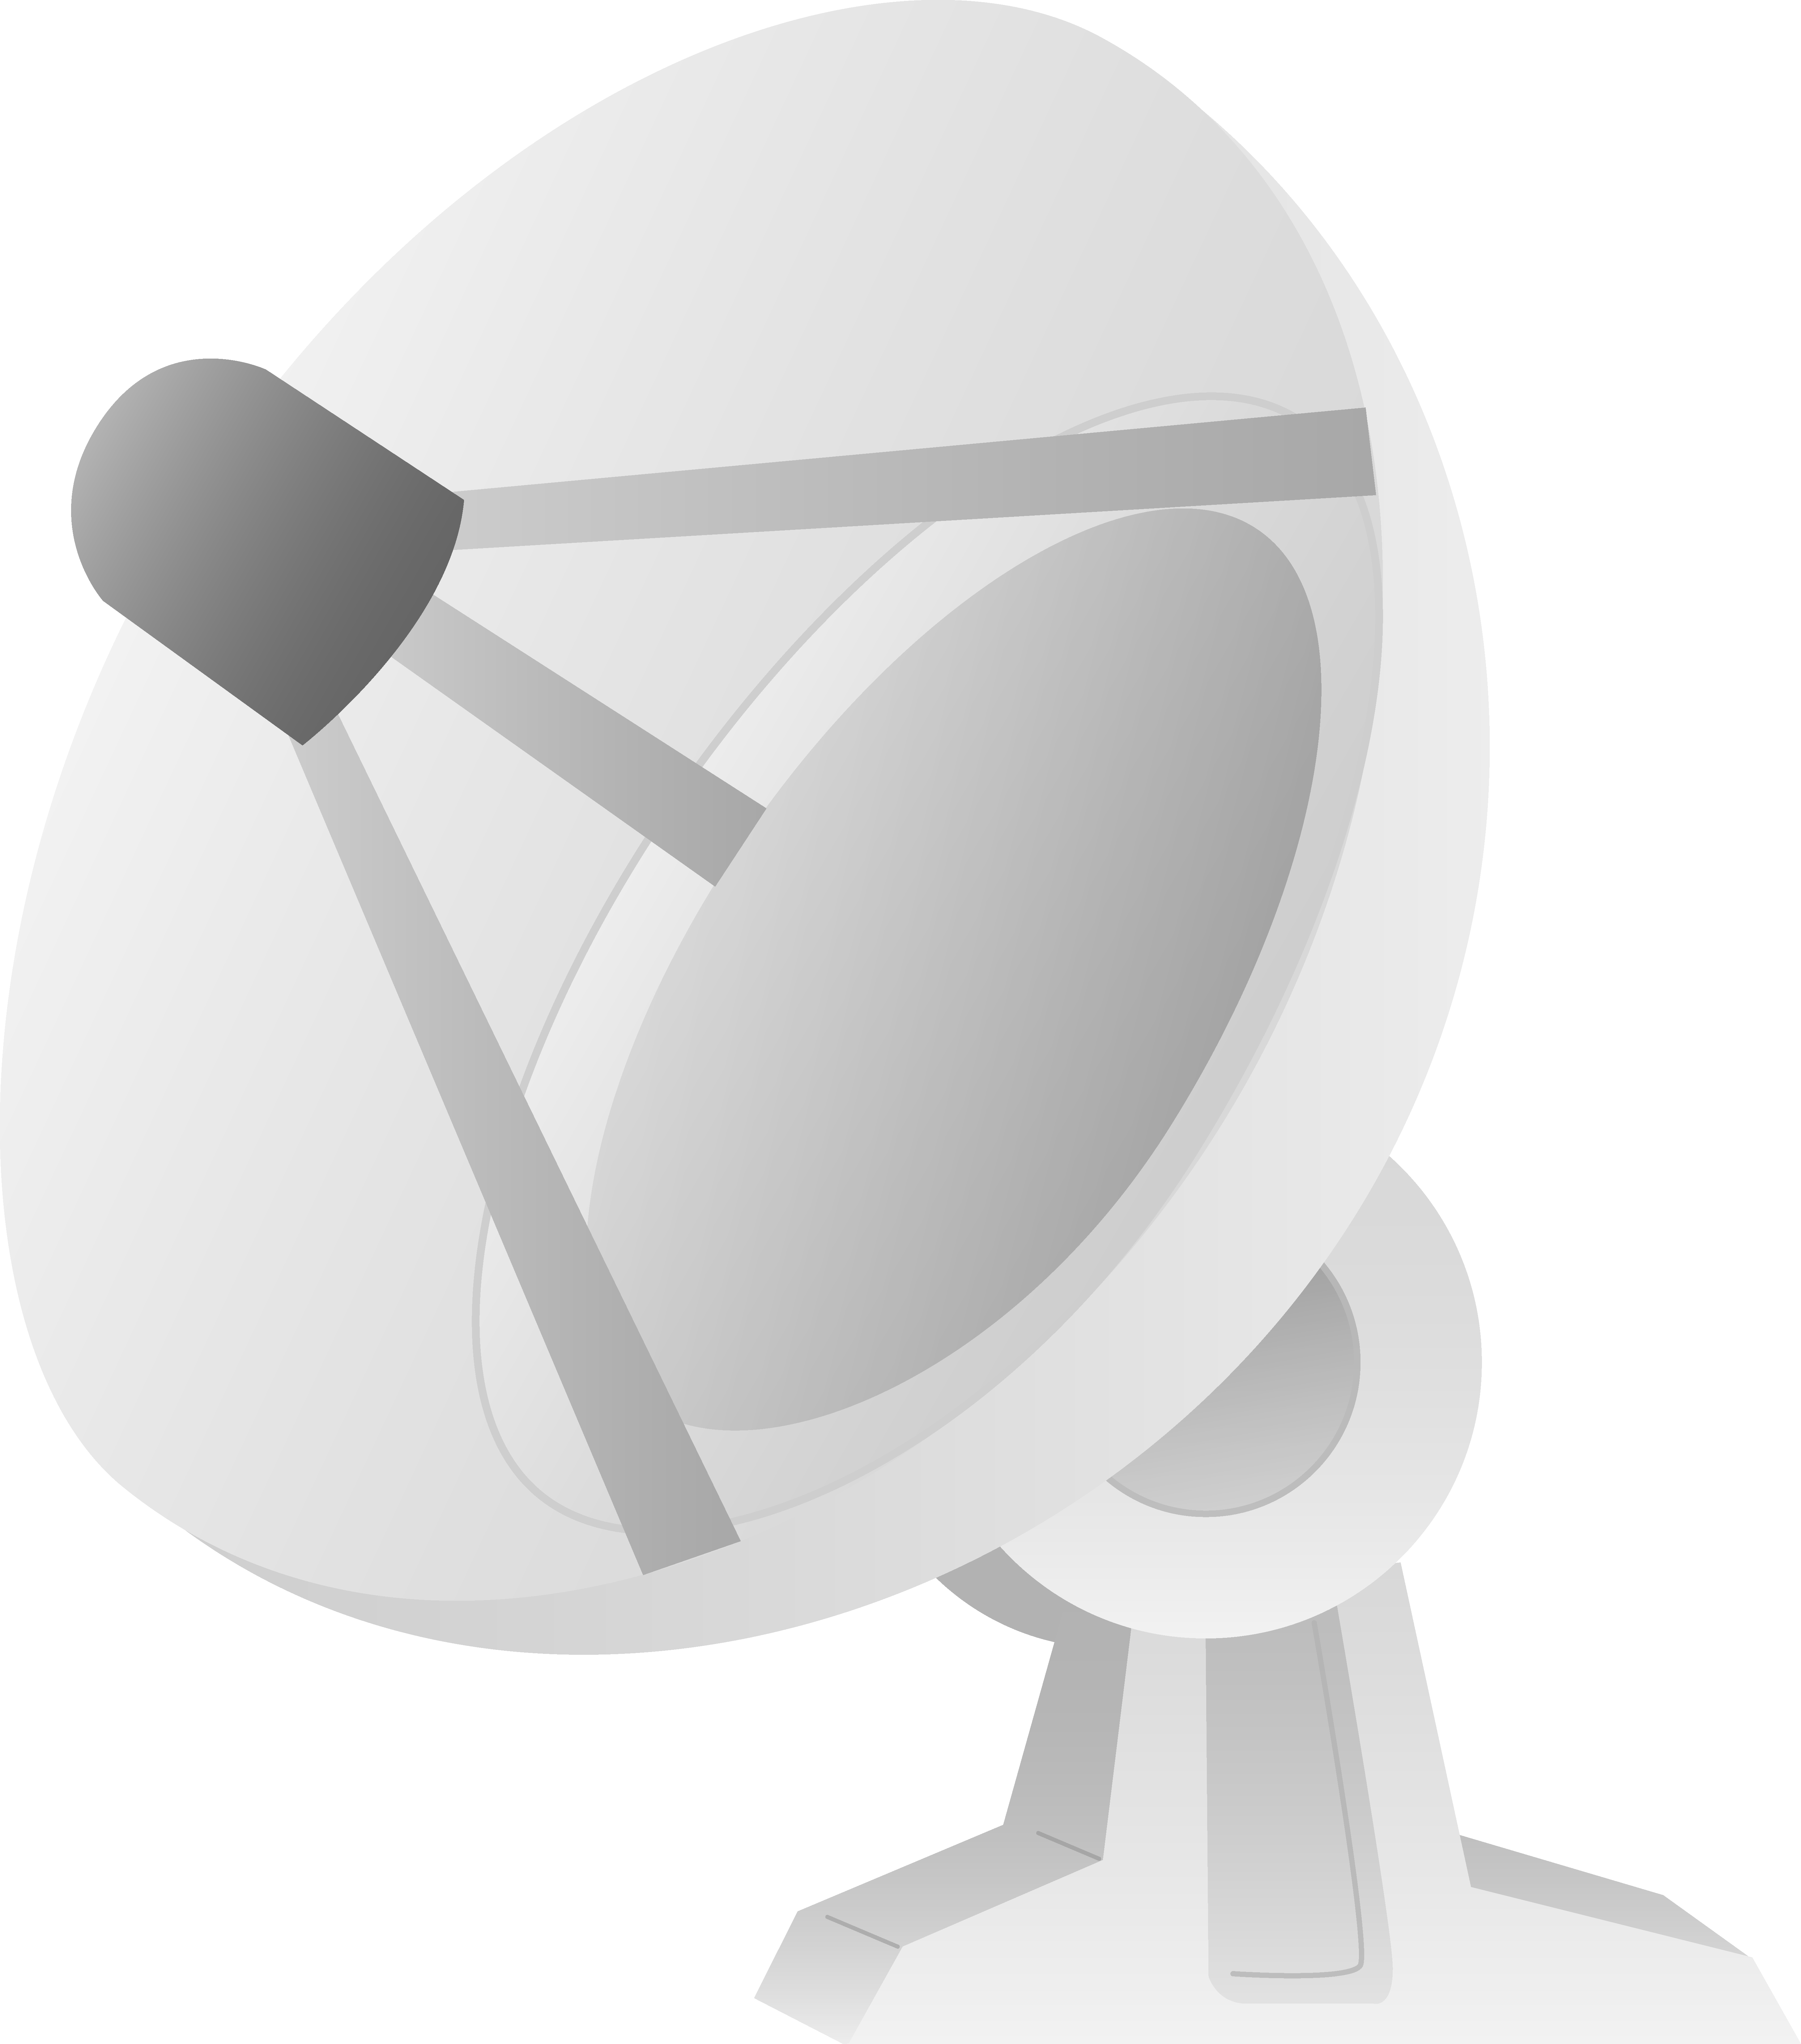 Satellite clipart outline. Free cliparts download clip